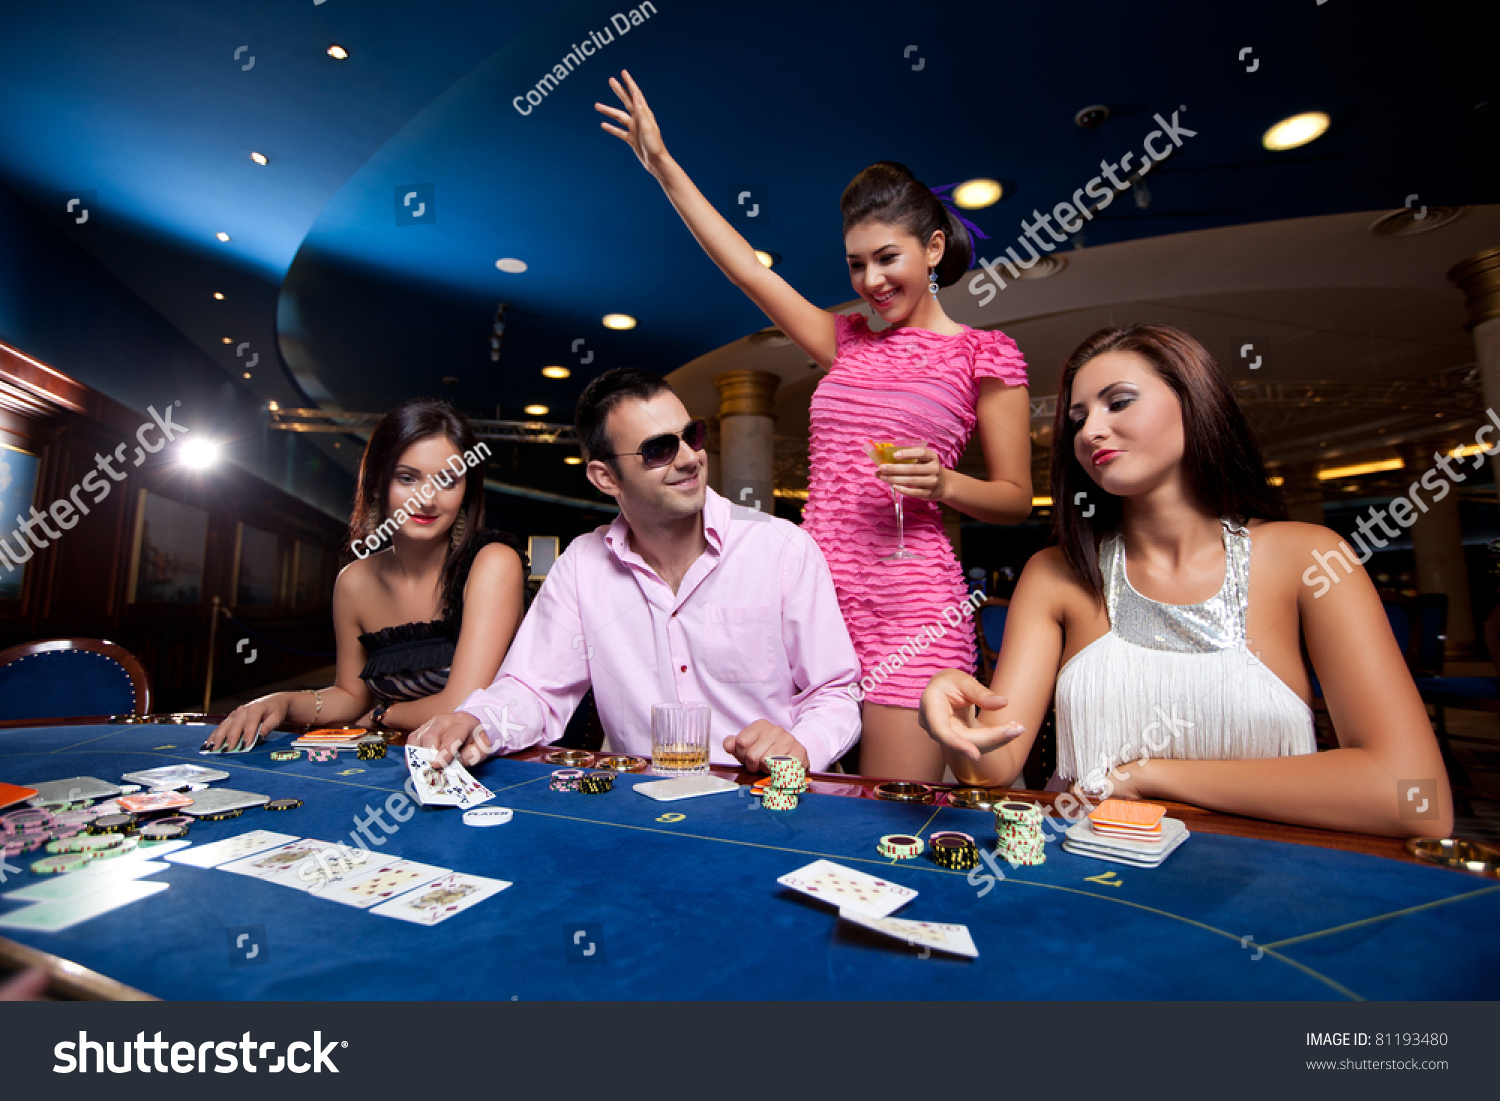 Playing poker in a casino